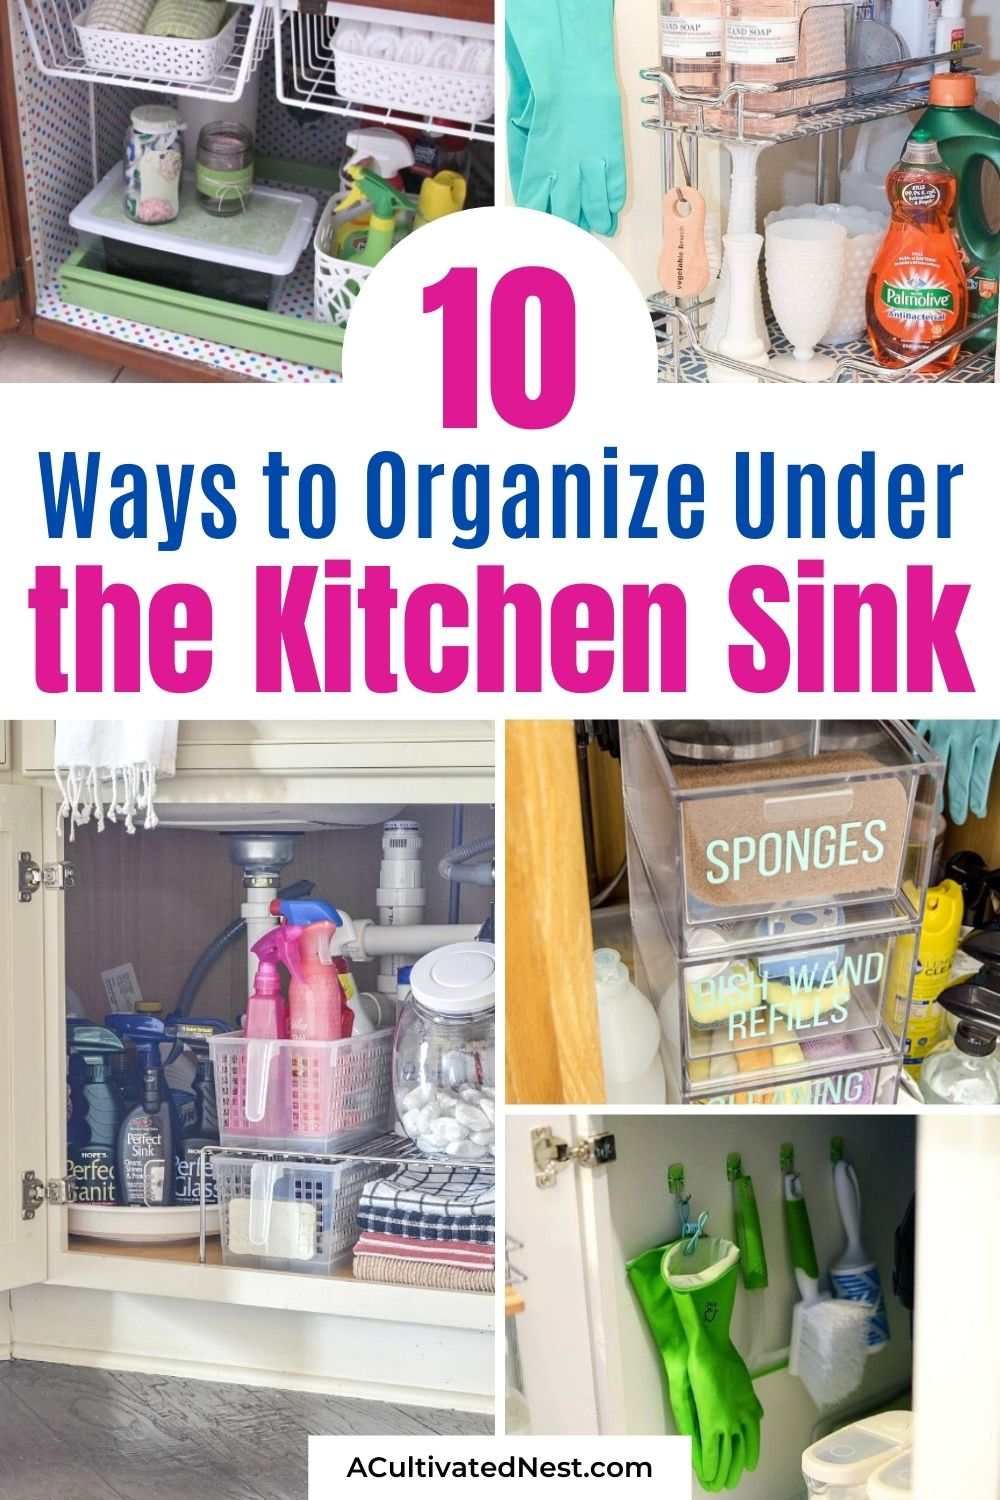 10 Clever Under the Kitchen Sink Organizing Ideas- If you struggle to organize under your kitchen sink, then you need these clever tips and hacks! | #kitchenOrganization #kitchenOrganizing #organizingTips #organization #ACultivatedNest